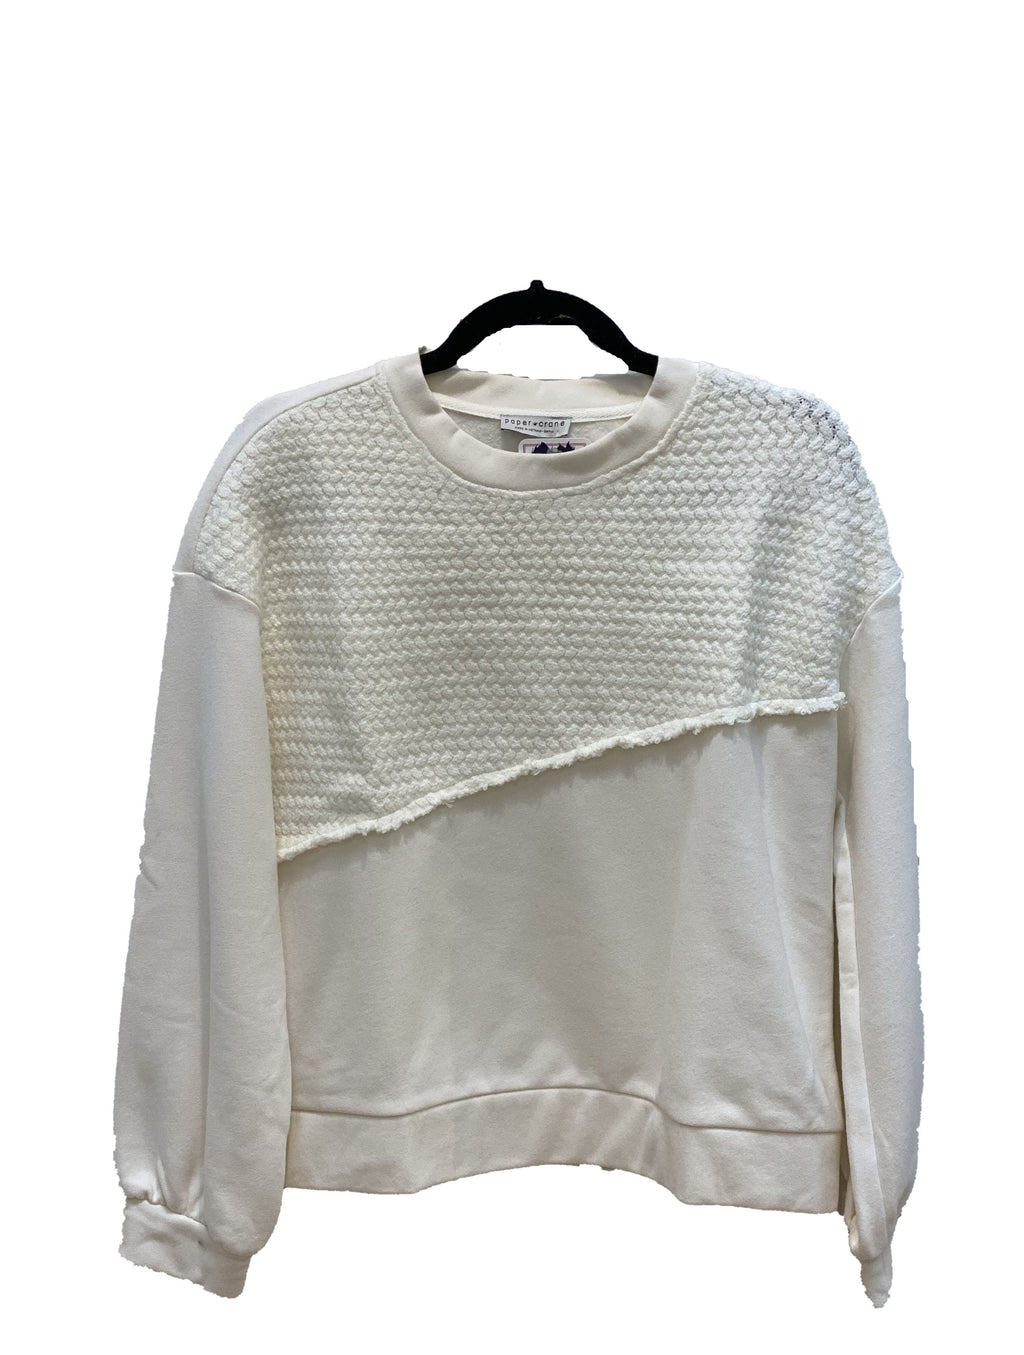 Paper Crane Textured Top in Ivory